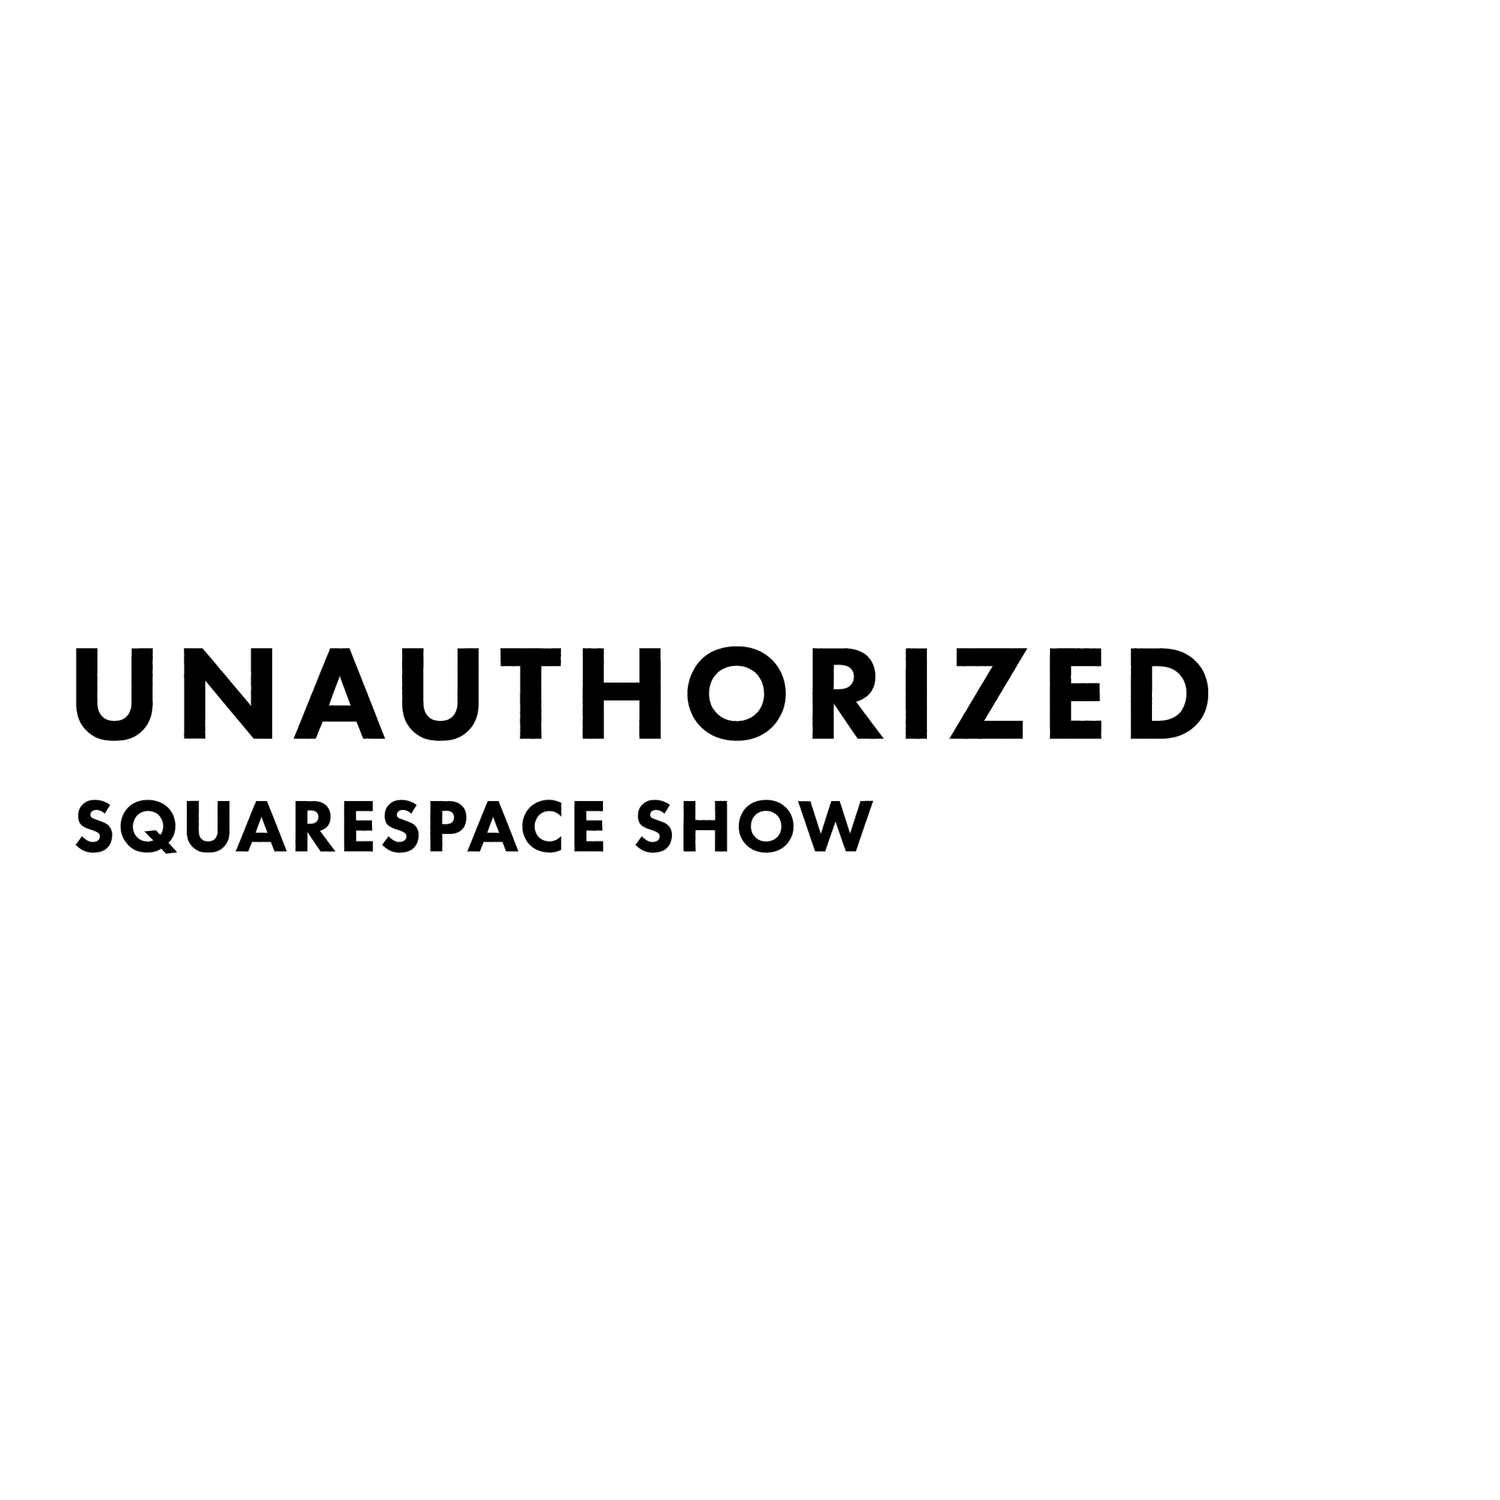 Unauthorized Squarespace Show